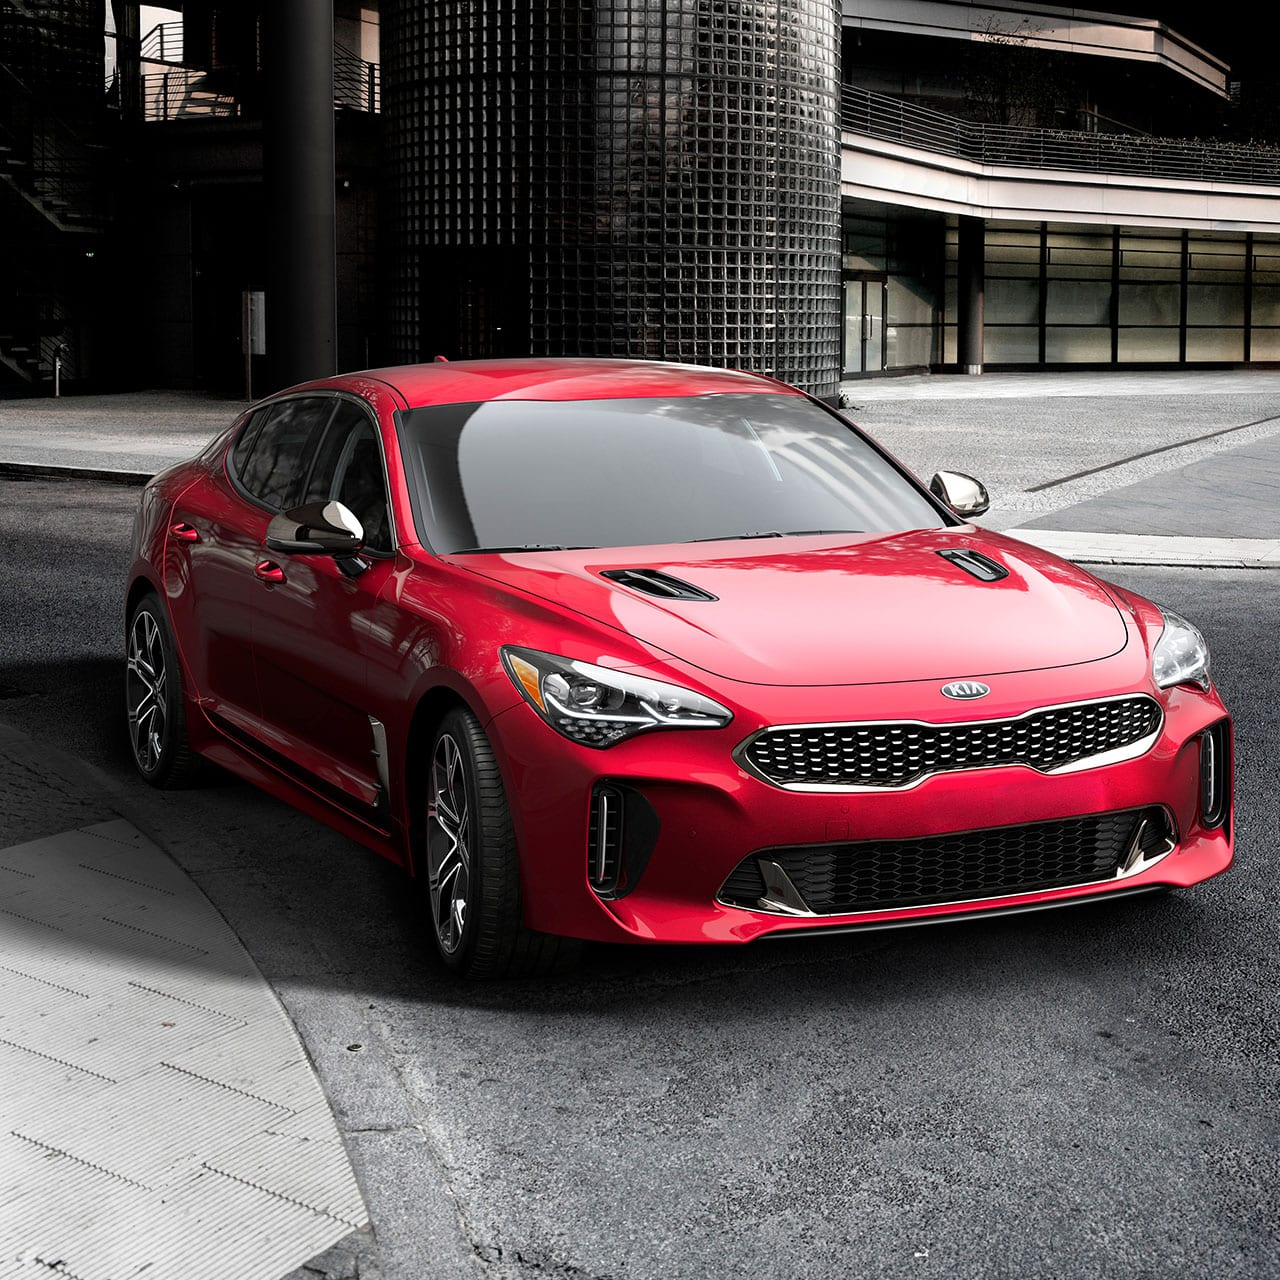 2019 Kia Stinger 2.0L Premium Price In UAE, Specs & Review